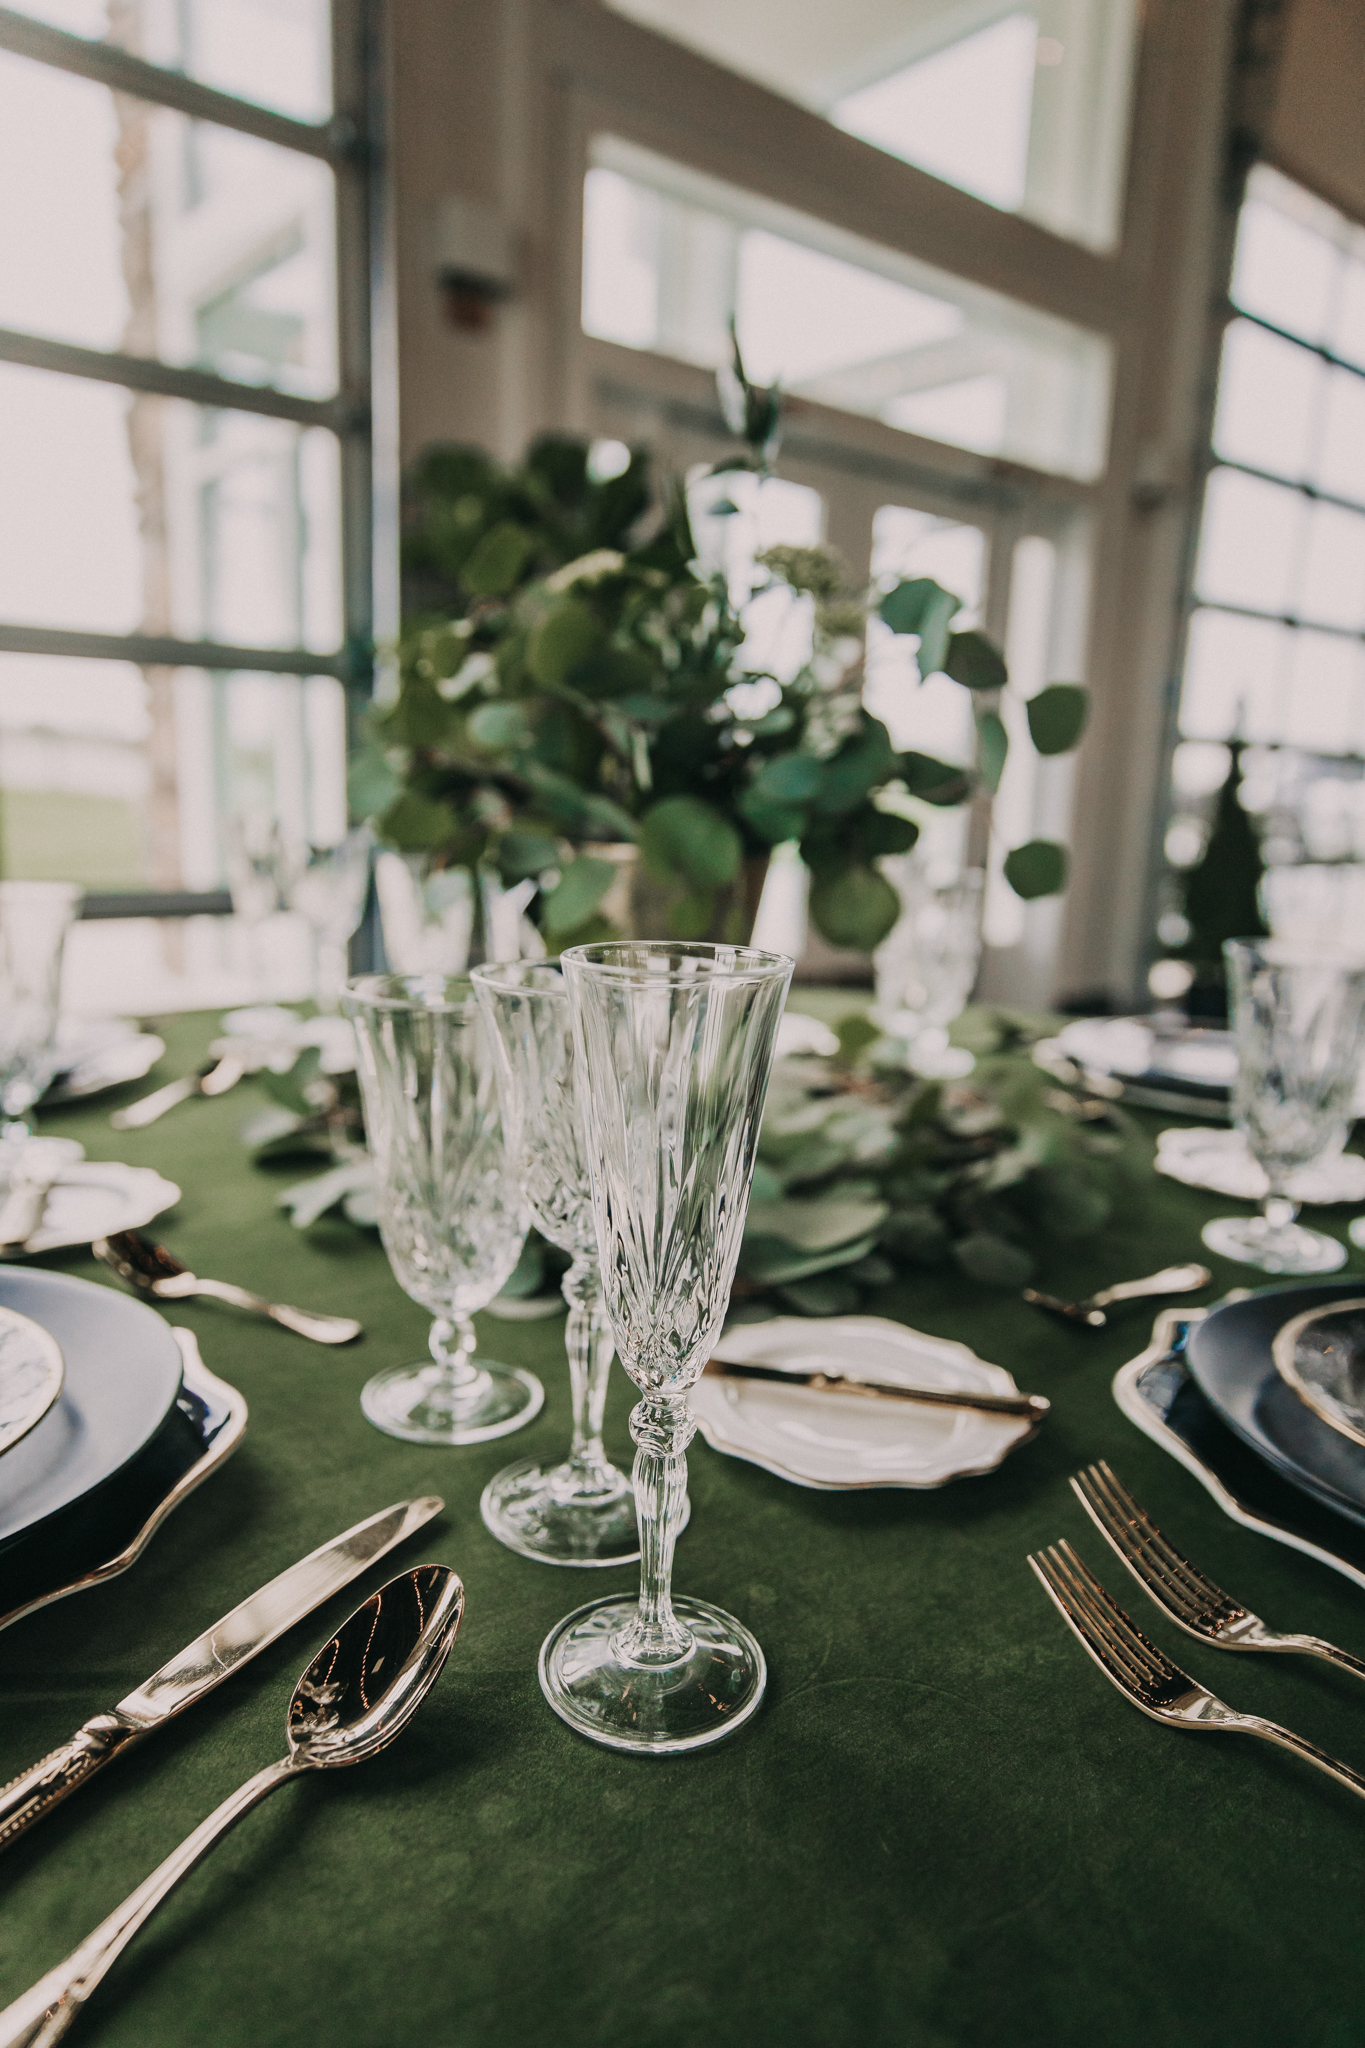 Wedding table decor: Shades of Green Legacy Styled Shoot by Music City Events and Billie-Shaye Style featured on Nashville Bride Guide